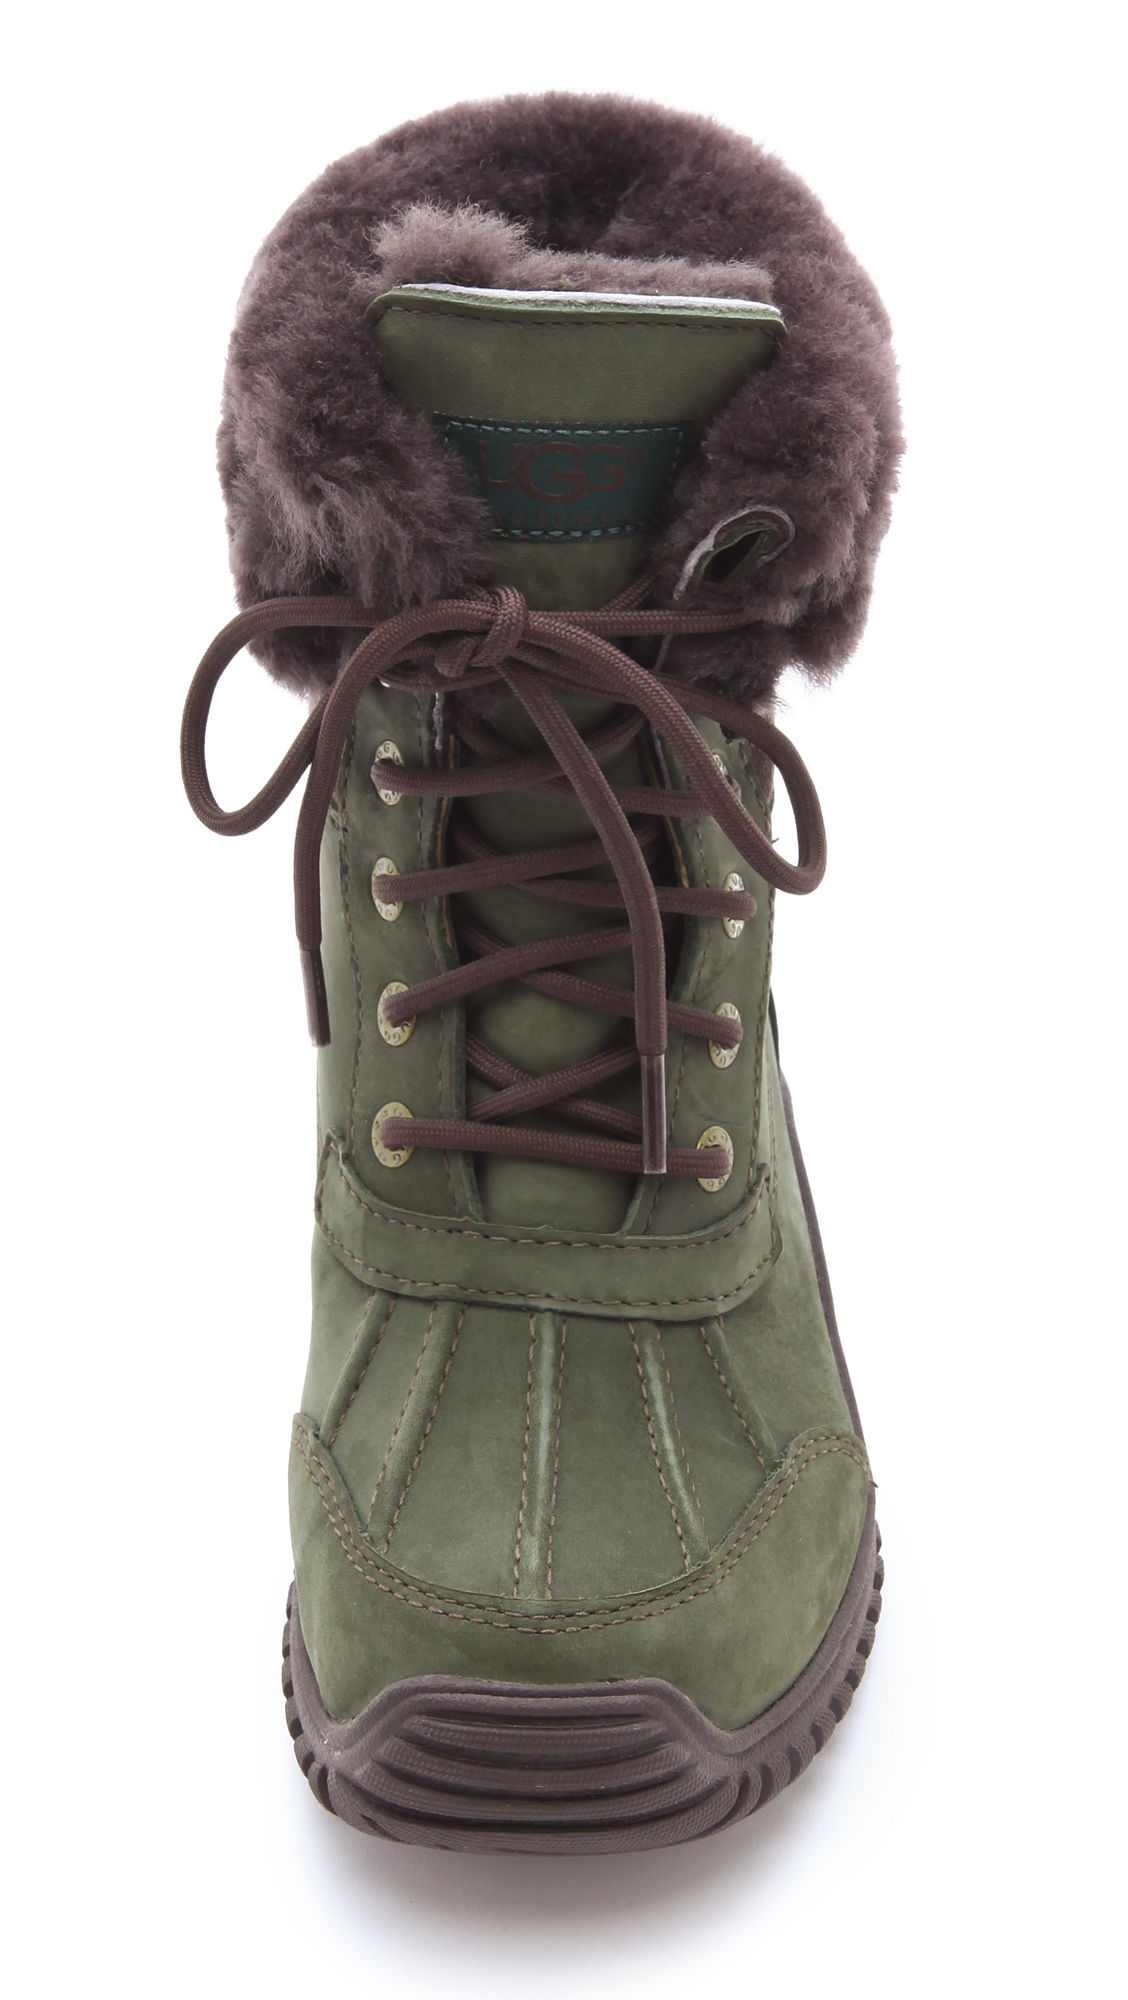 Ugg Adirondack Boots In Green Lyst